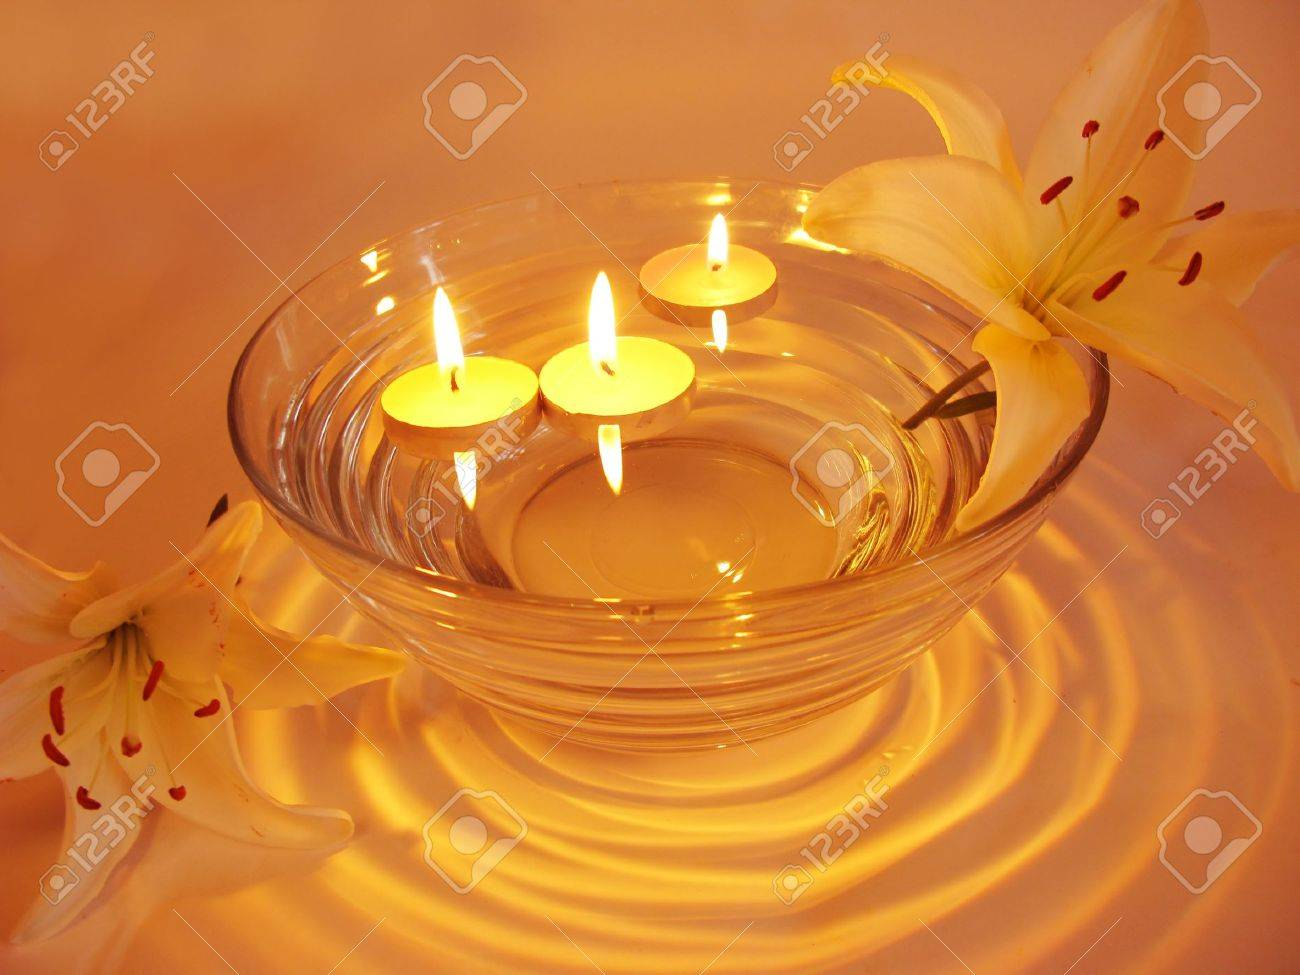 Spa Lit Candles Lilies Flowers Health-care Treatment Stock Photo ...